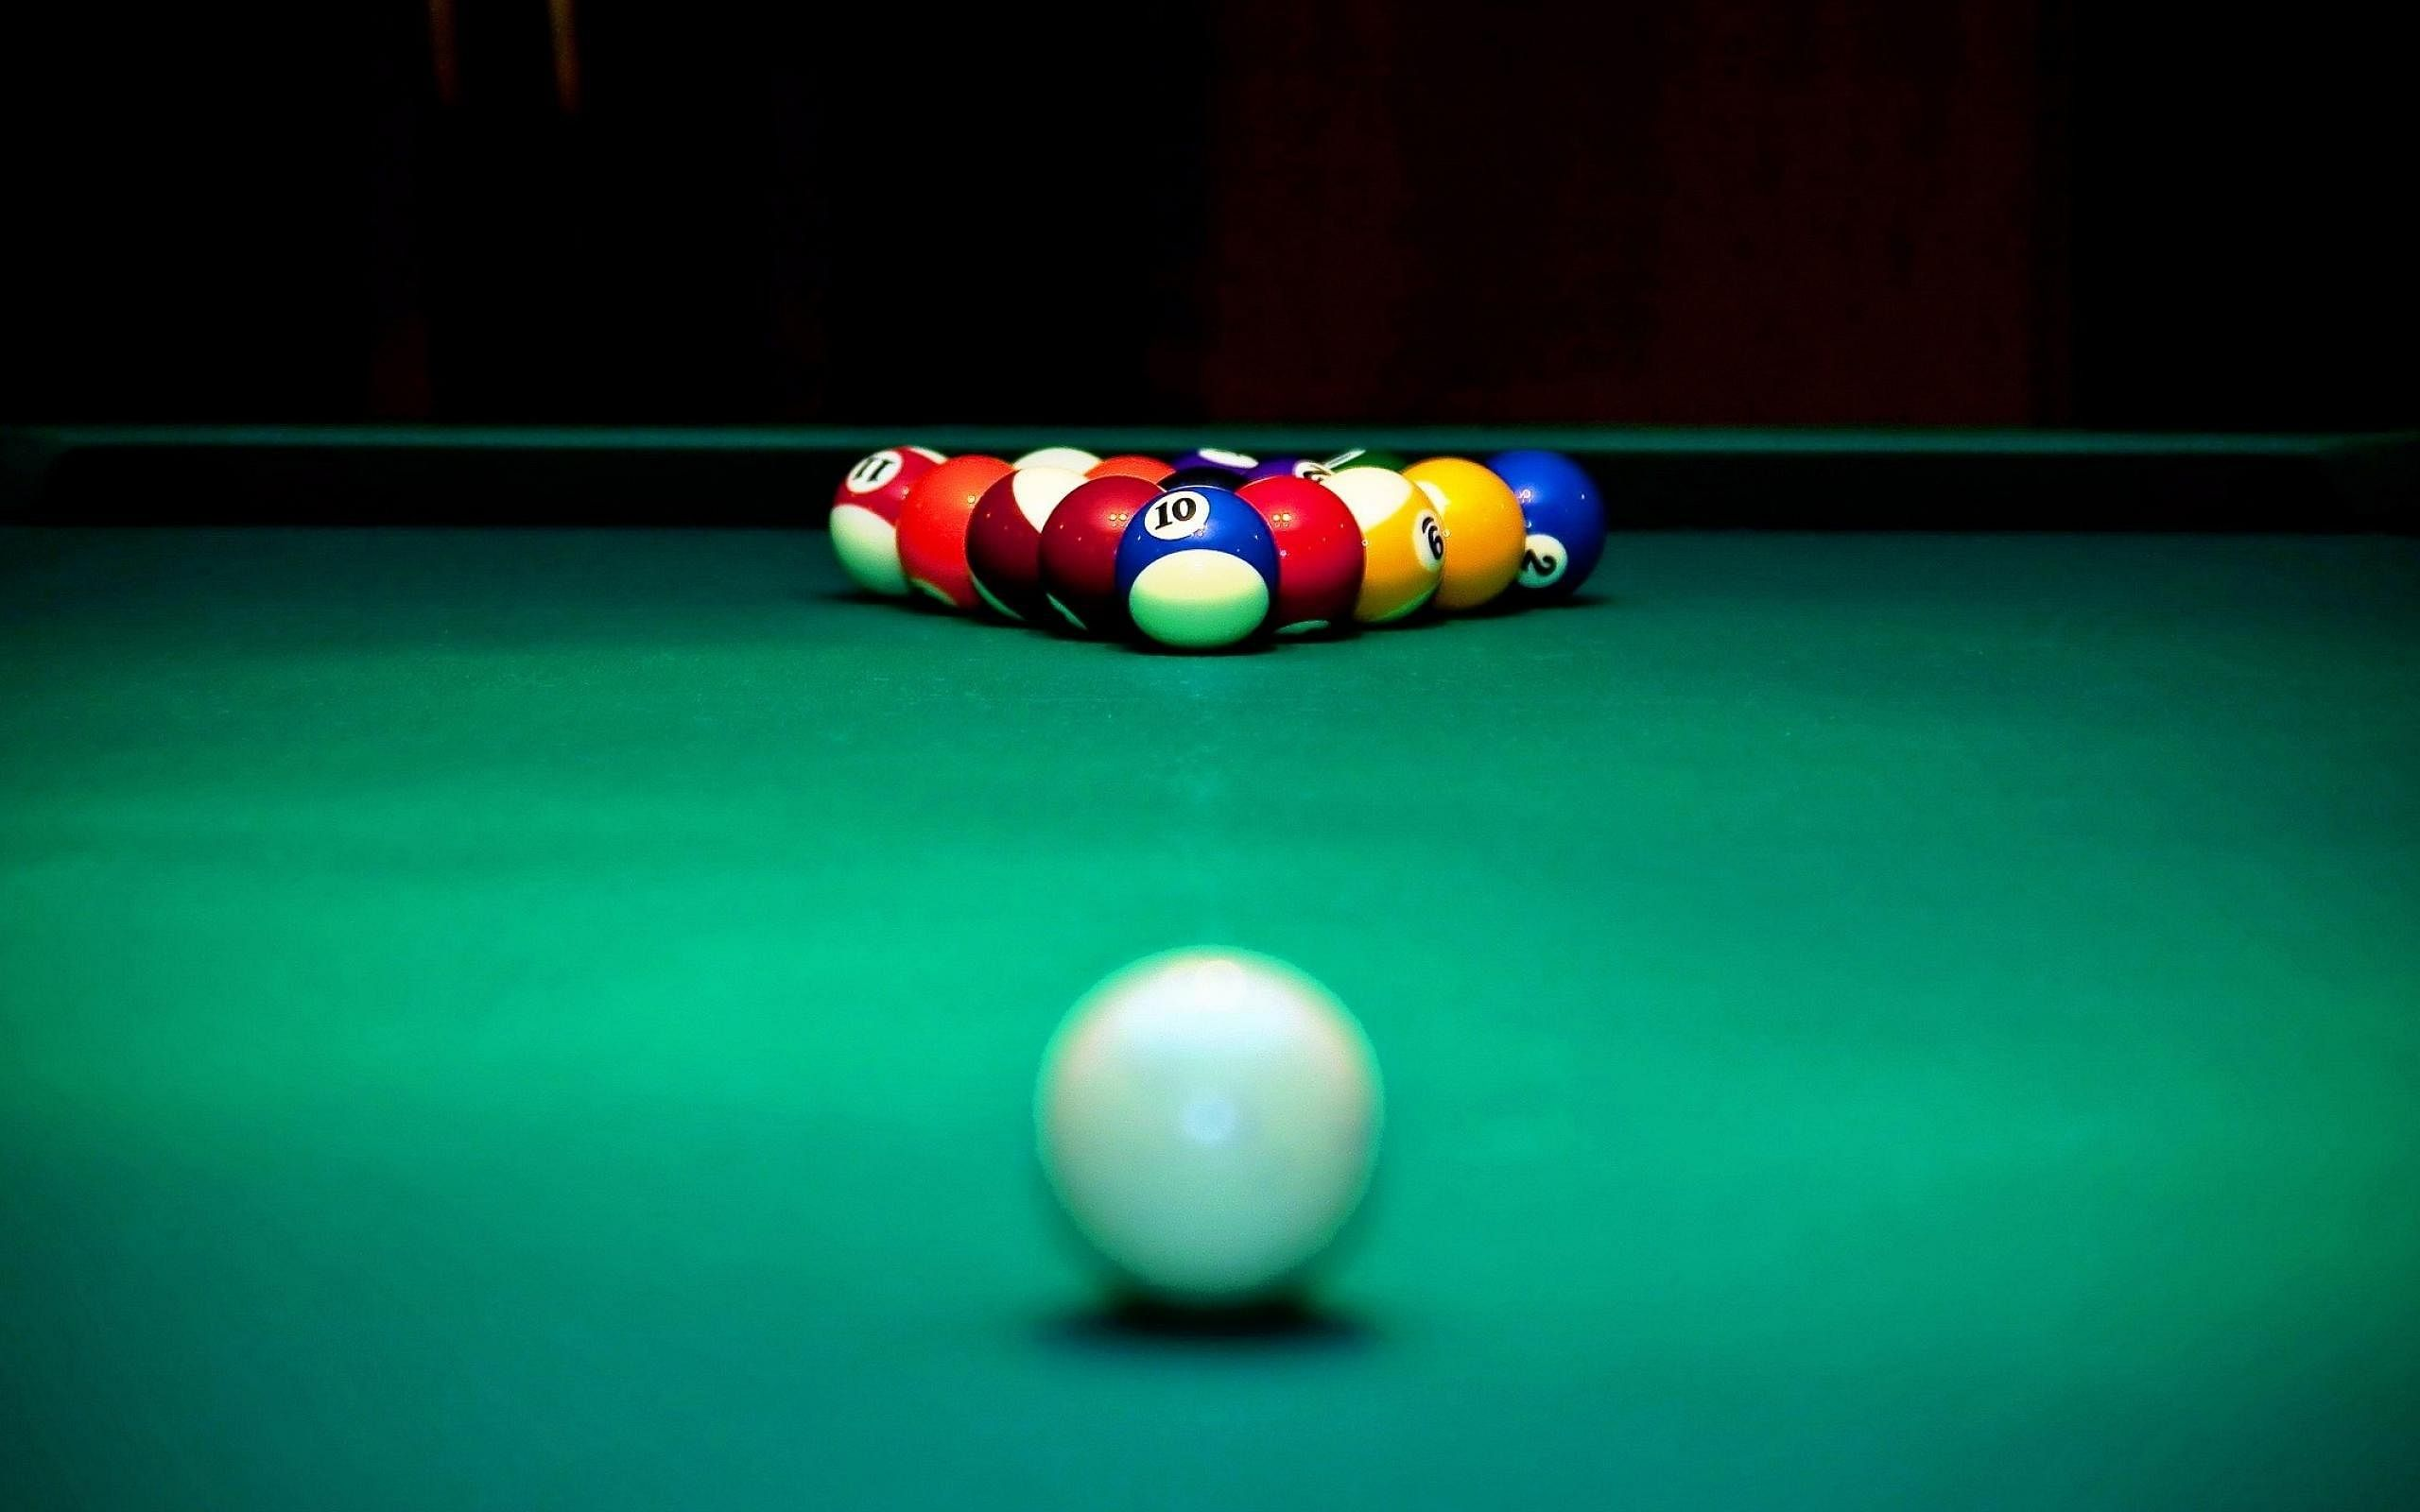 India to host cue sport league